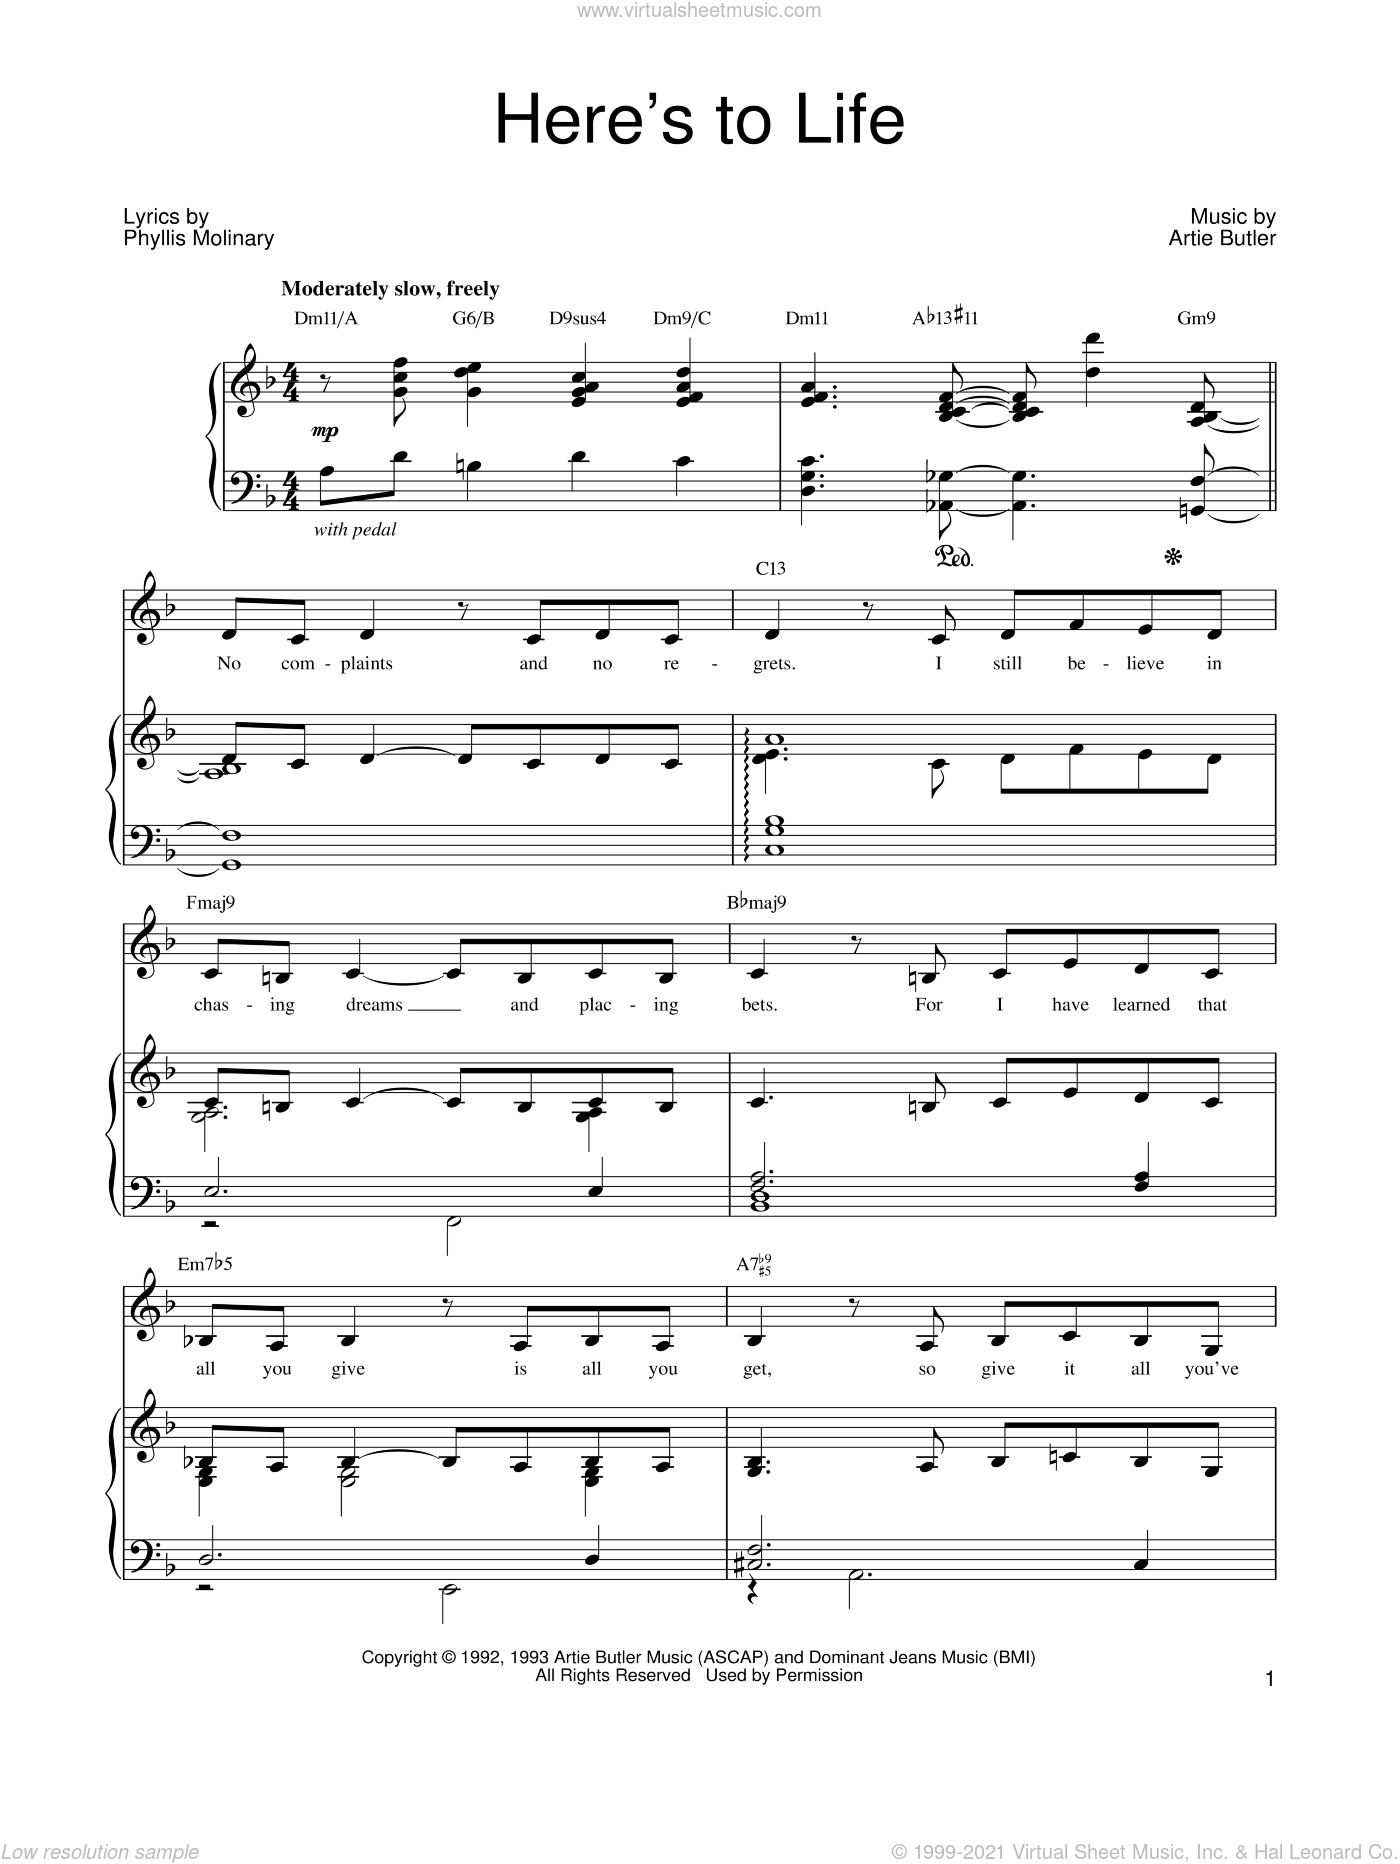 Here's To Life sheet music for voice, piano or guitar by Barbra Streisand, Shirley Horn, Artie Butler and Phyllis Molinary, intermediate skill level